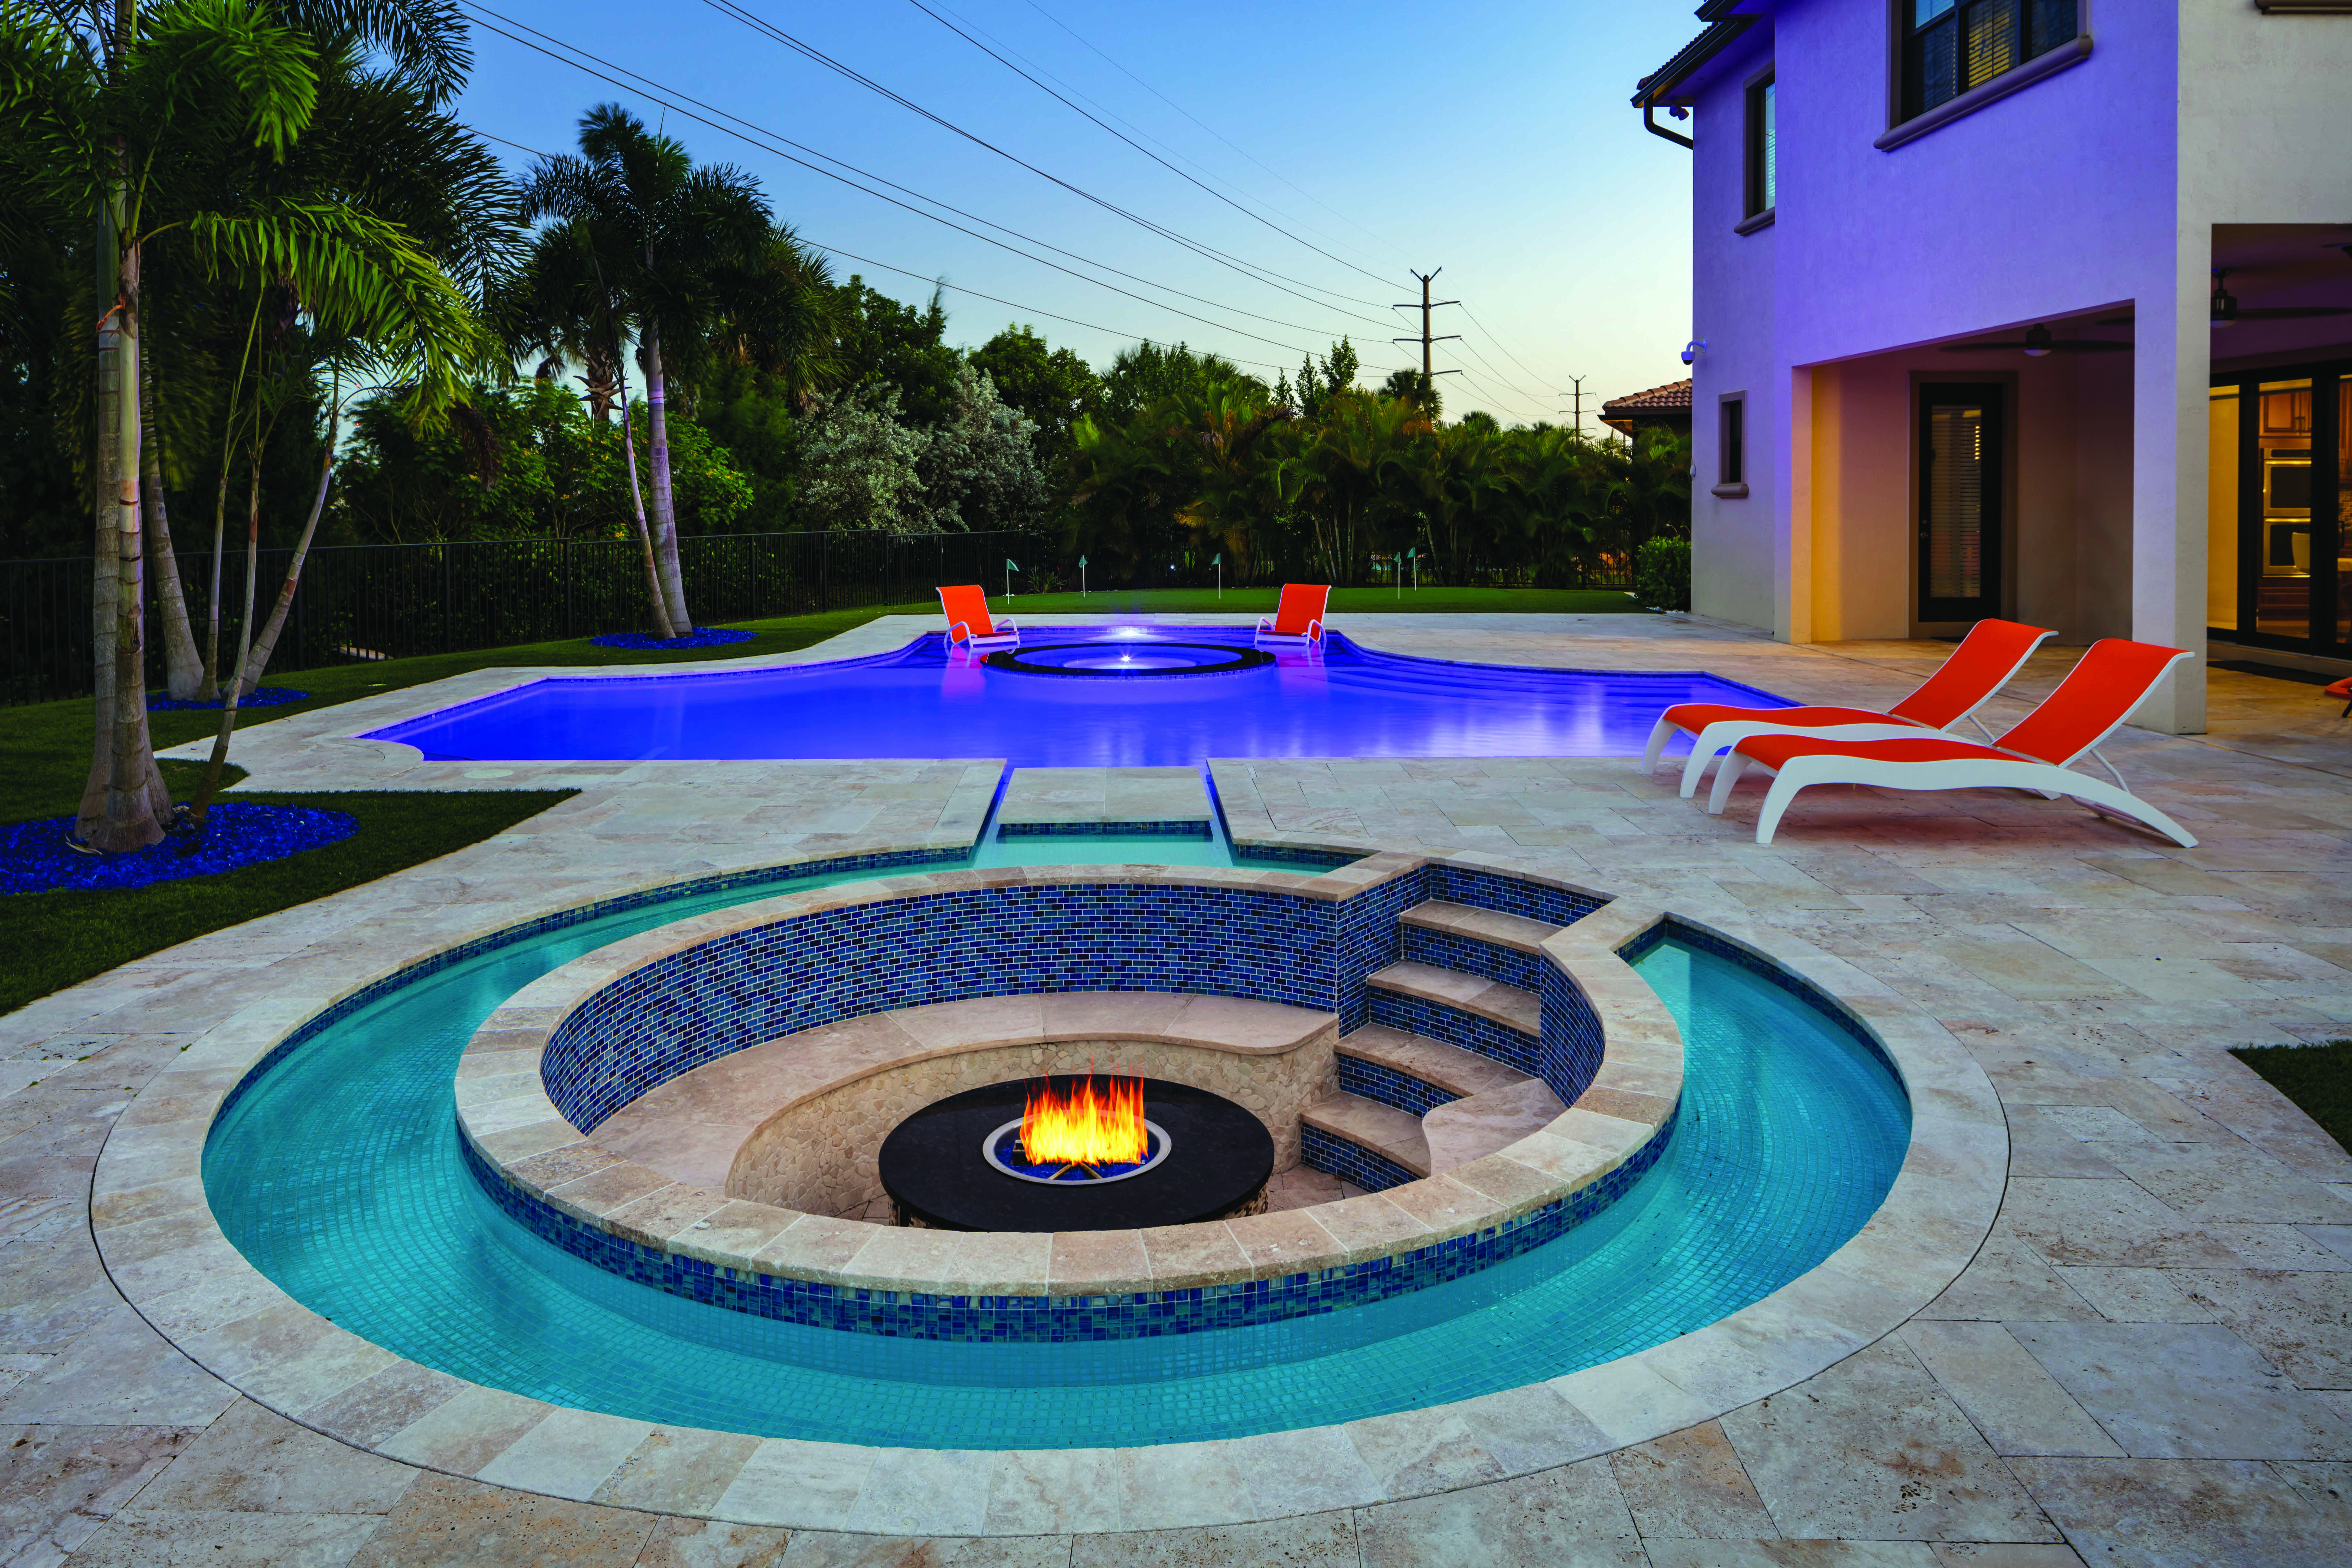 Fountain Blue Pools: Gold In Pool U0026 Spa Combination 501 700 Sq Ft  Pool And Spa Designs